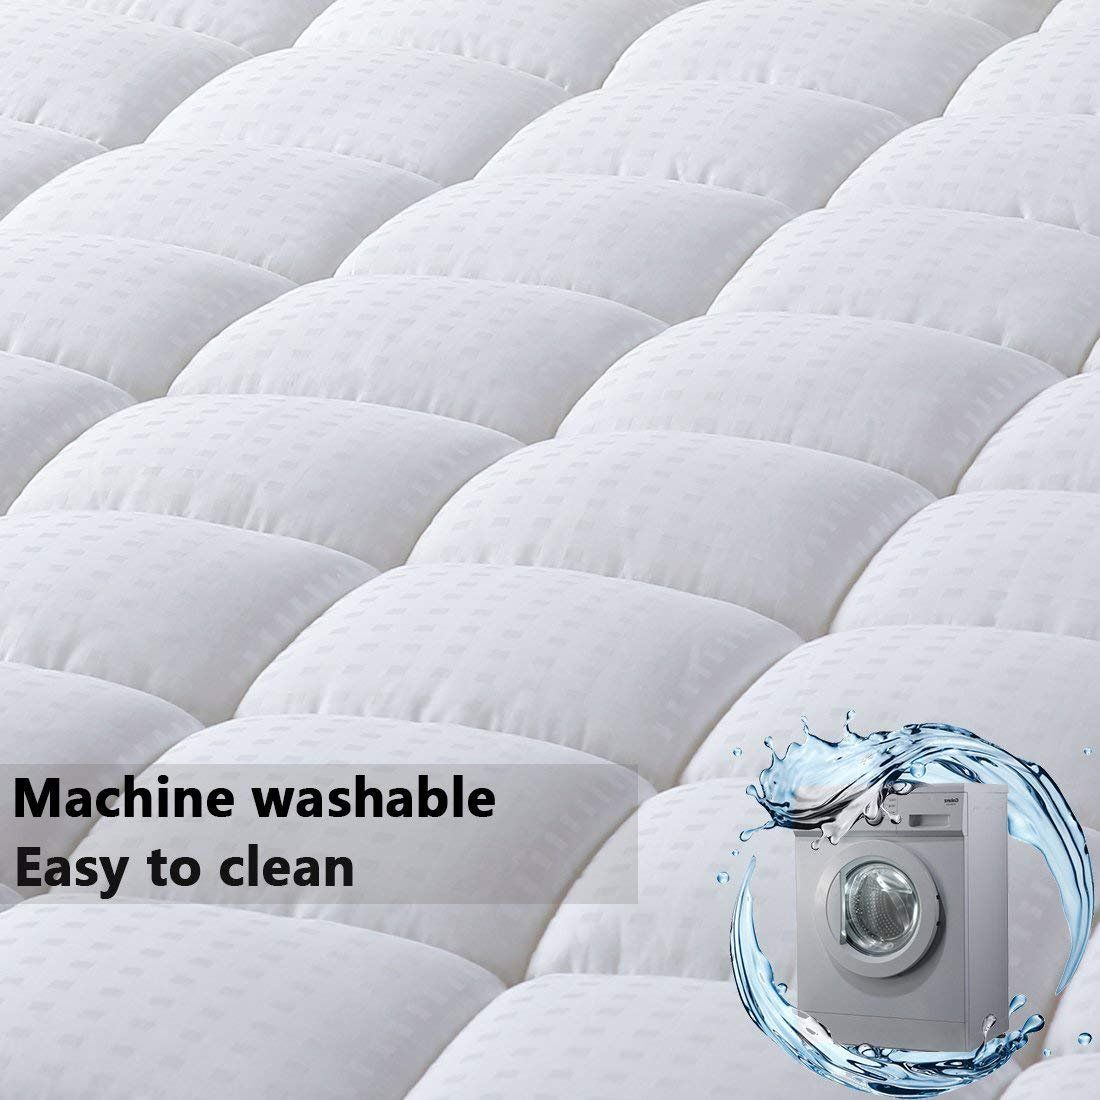 Merous Queen Size Cotton Mattress Pad Down Alternative Mattress Cover Hypoallergenic Fitted Quilted Mattres Mattress Covers Cotton Mattress Mattress Pad Cover